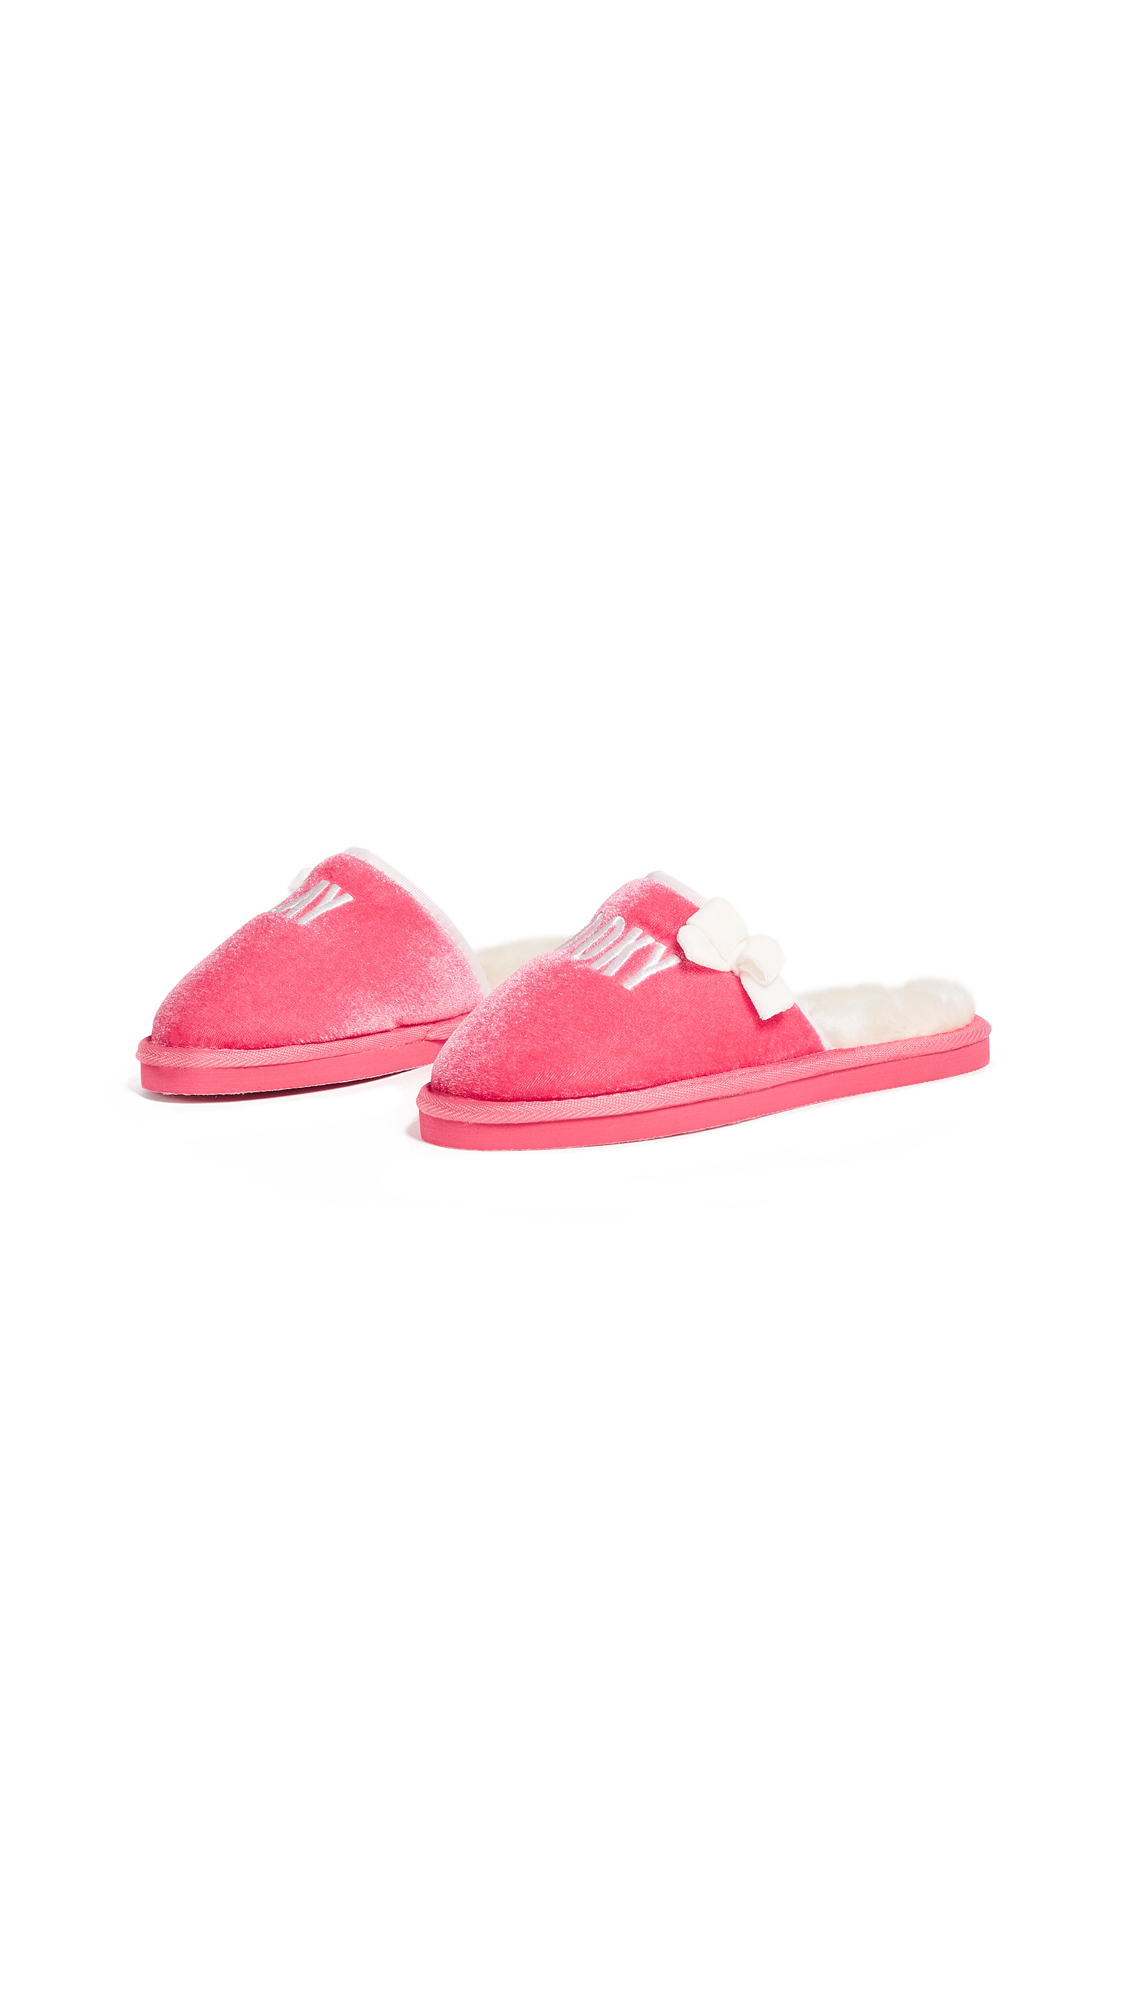 Kate Spade New York Berry Hooky Embroidery Slippers - Deep Carnation